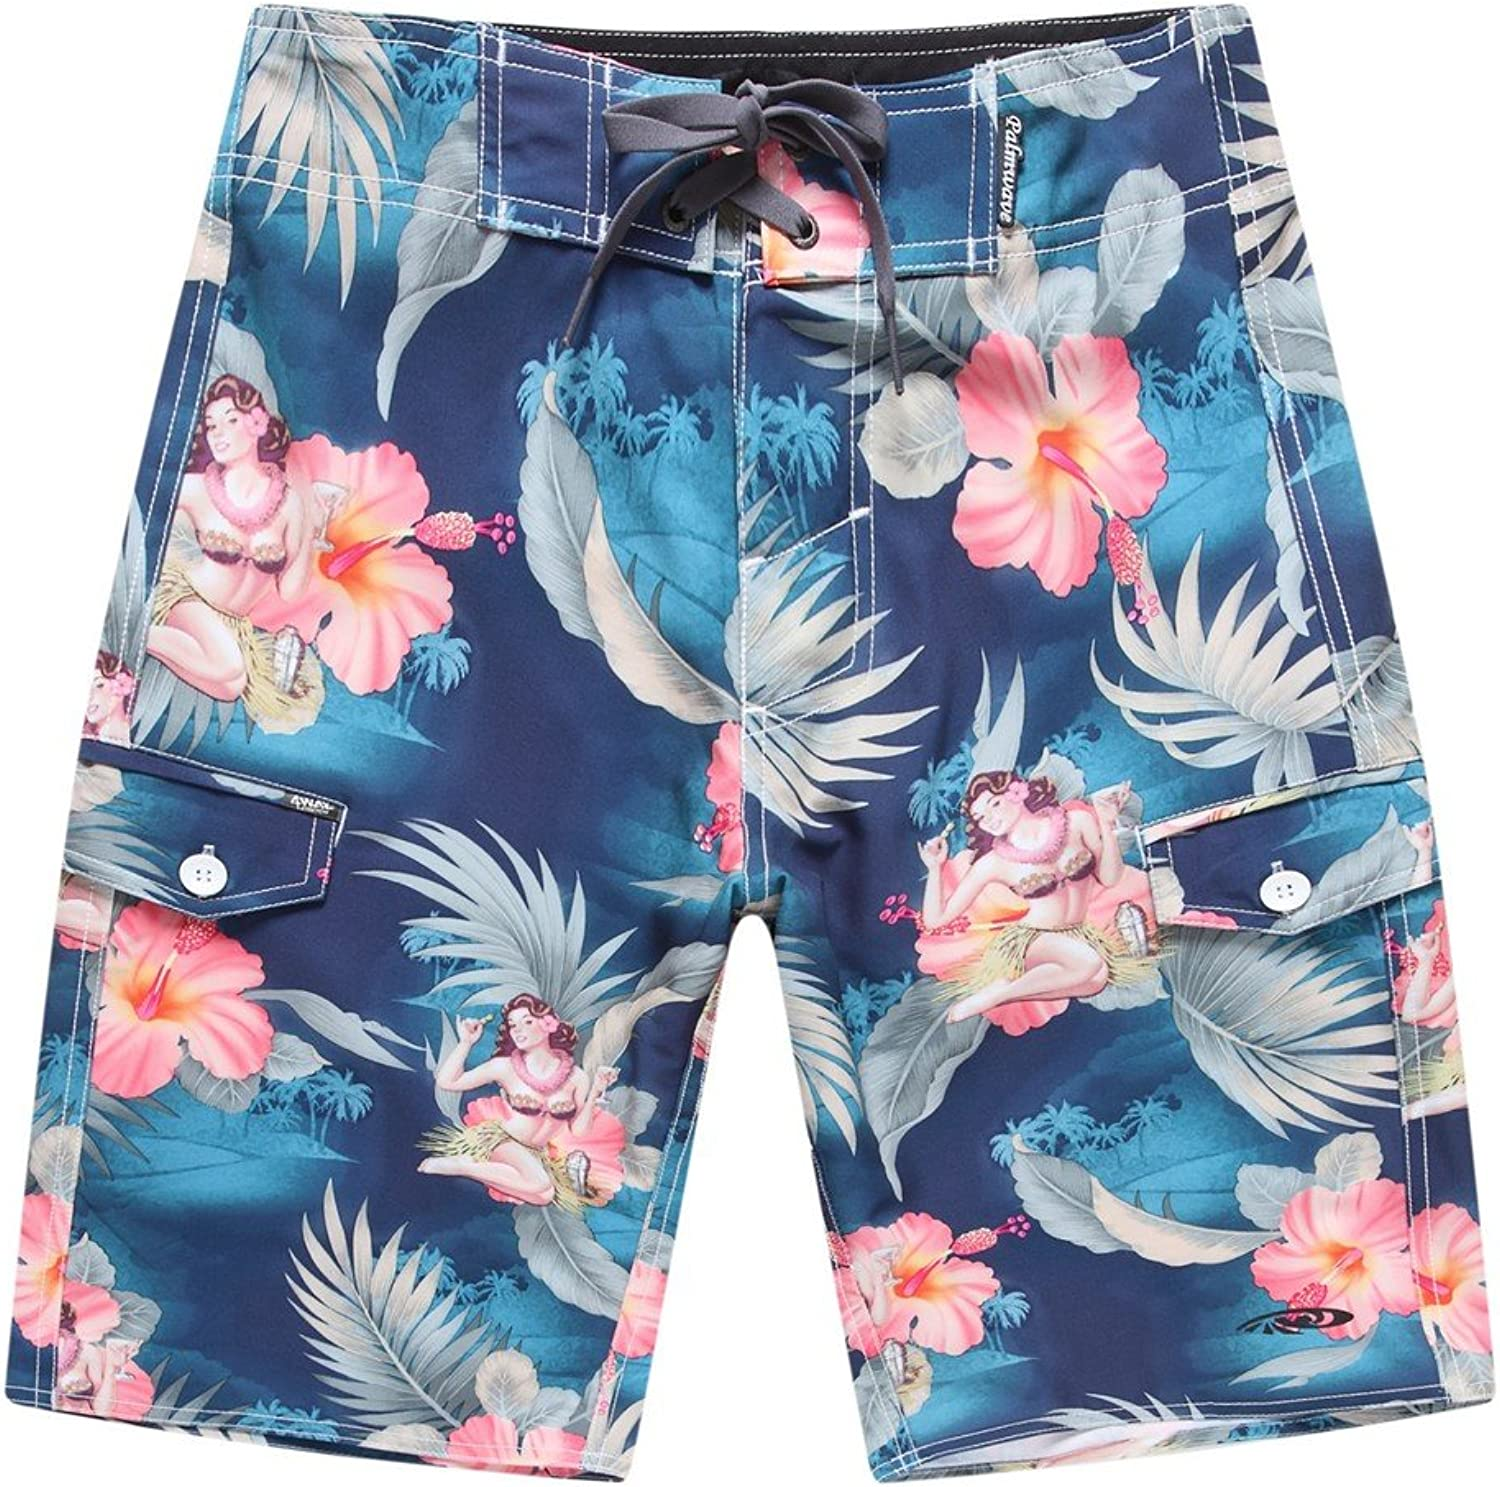 Palm Wave Men's Beach Wear Board Shorts with Pocket in blueee Hula Girl Cocktail